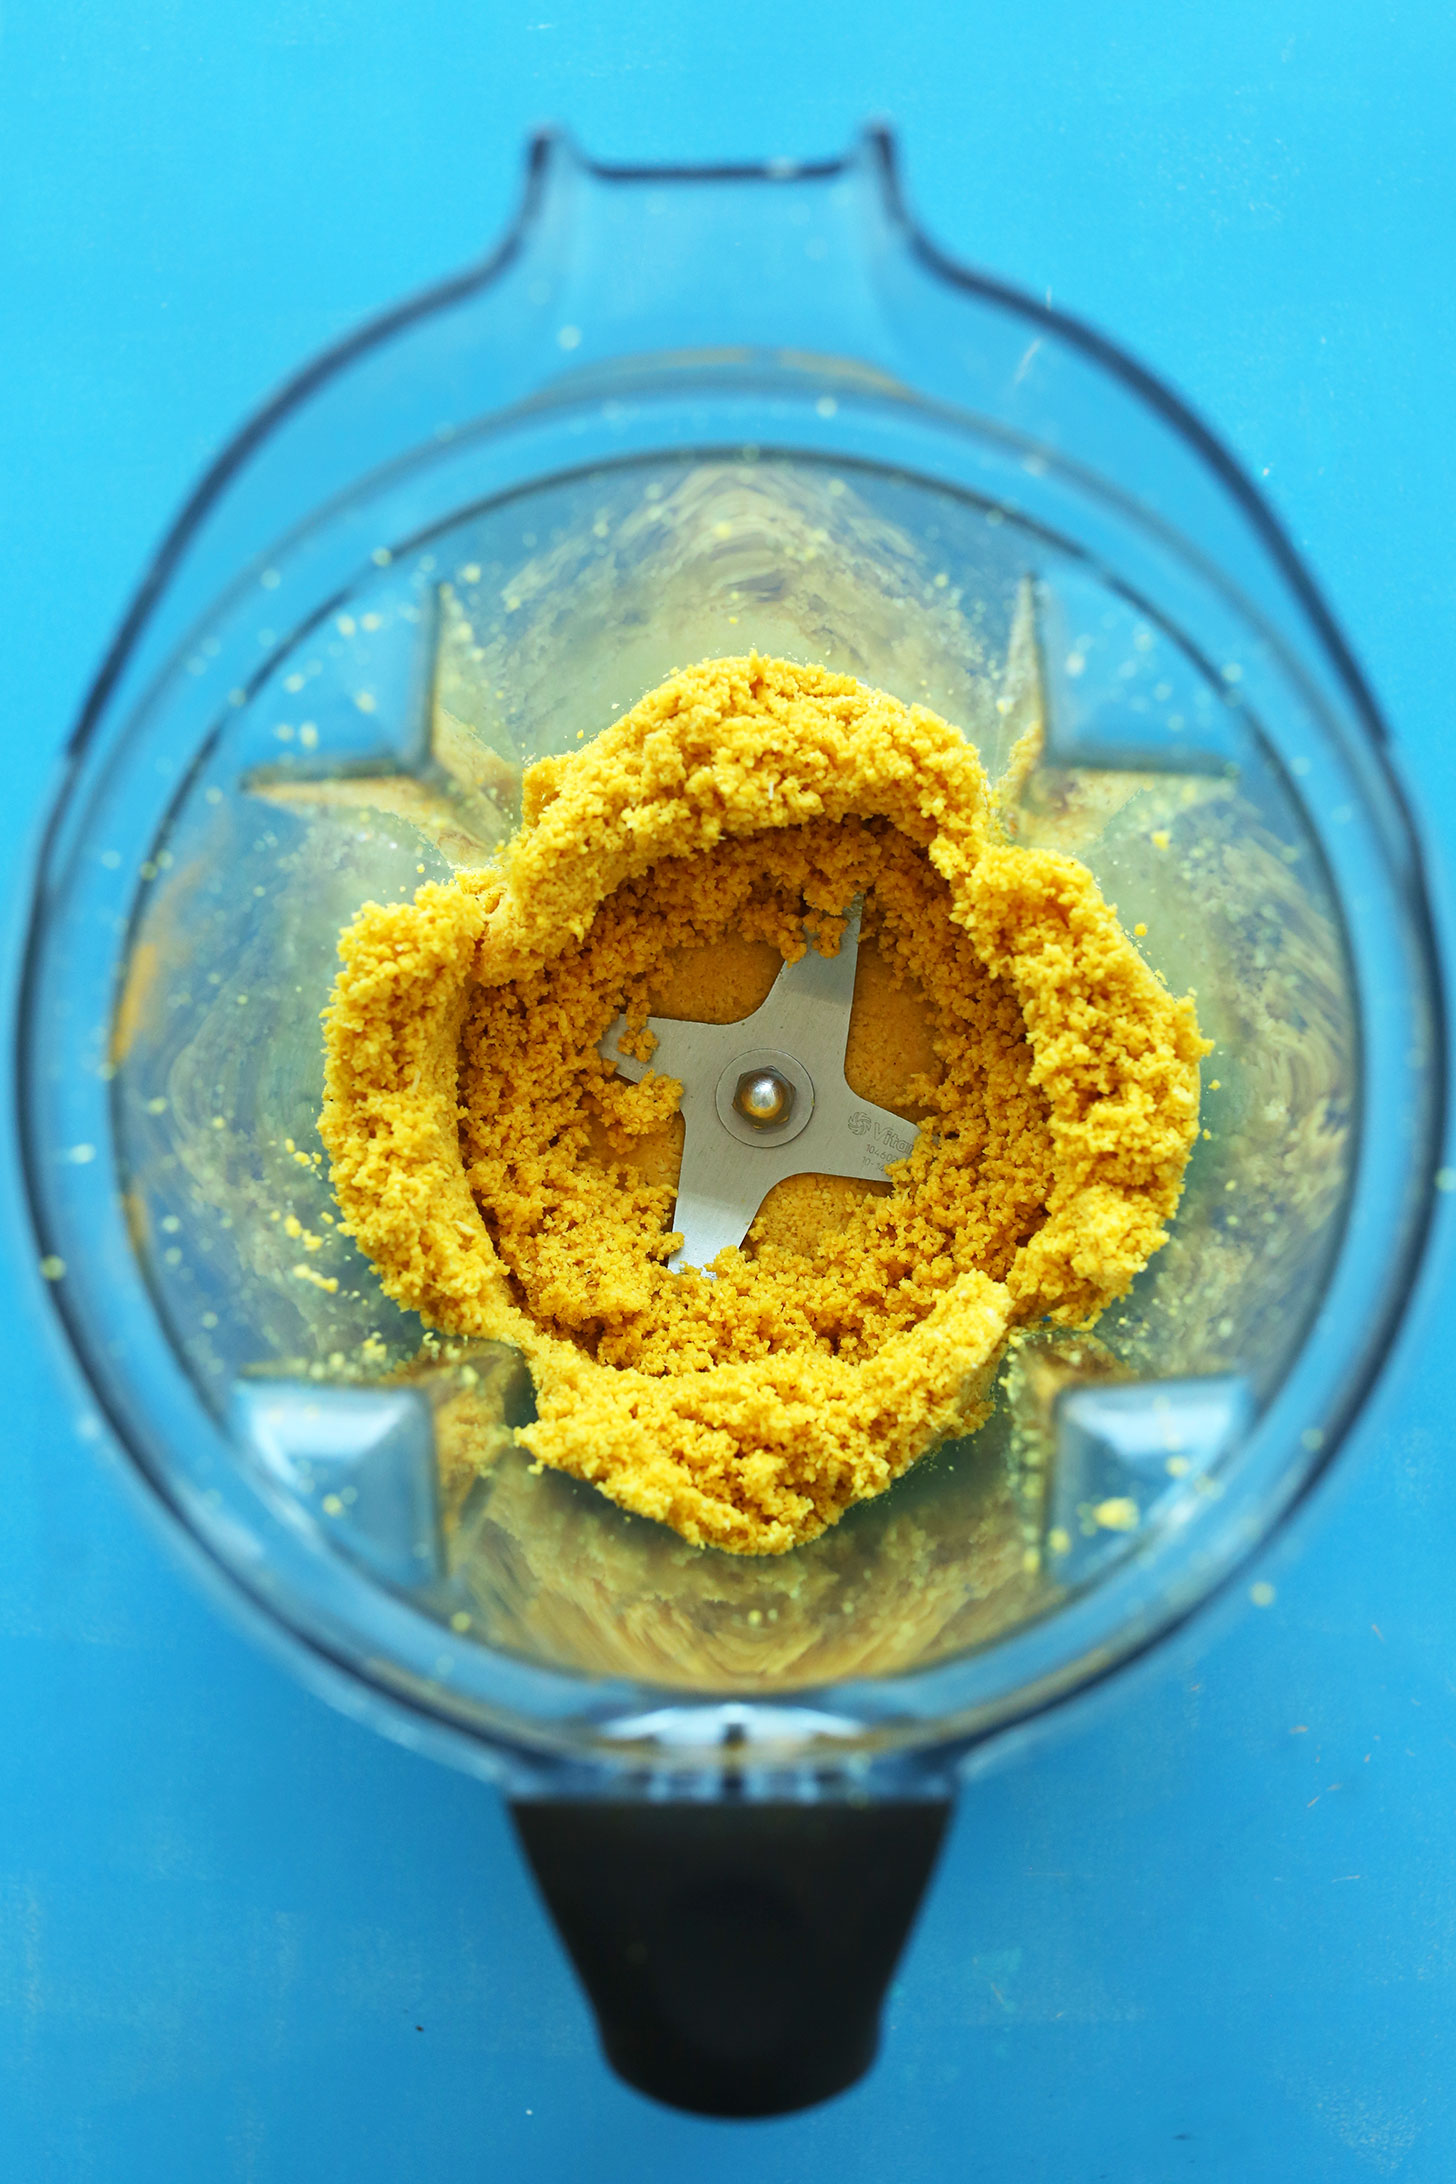 Blender with ingredients for making homemade healthy macaroons with turmeric